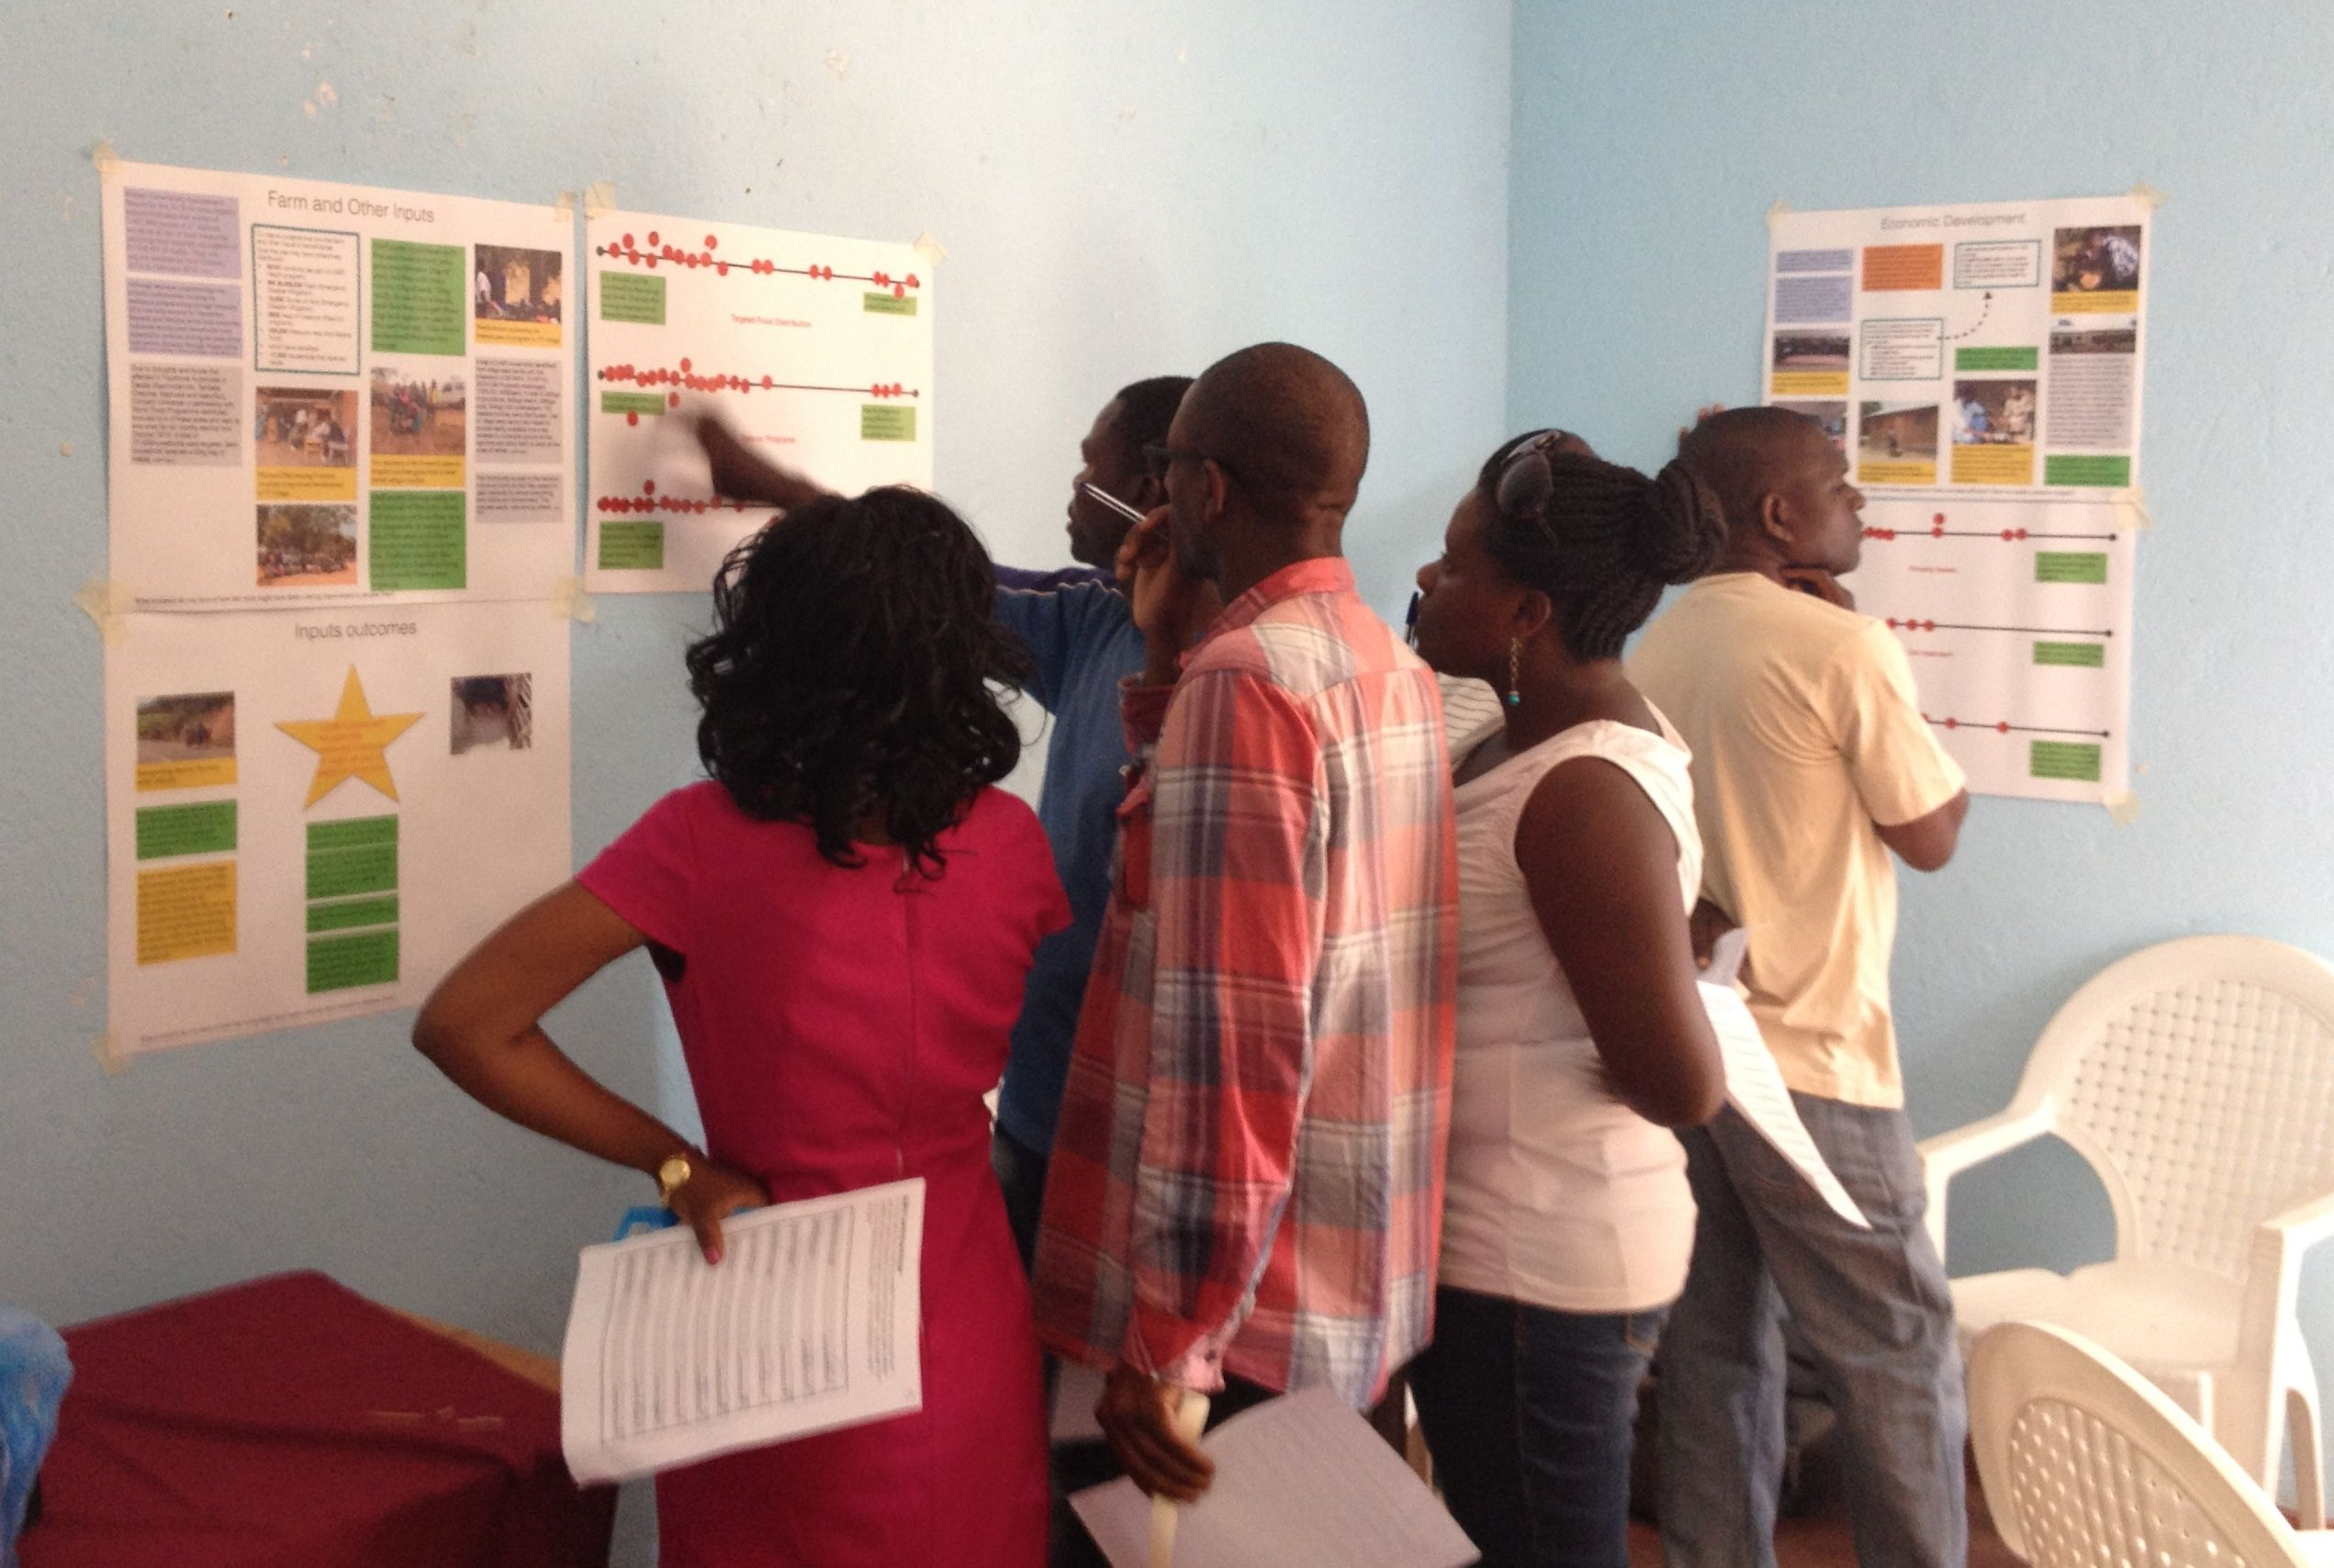 WASH staff look at posters describing activities and outcomes across the whole of CU